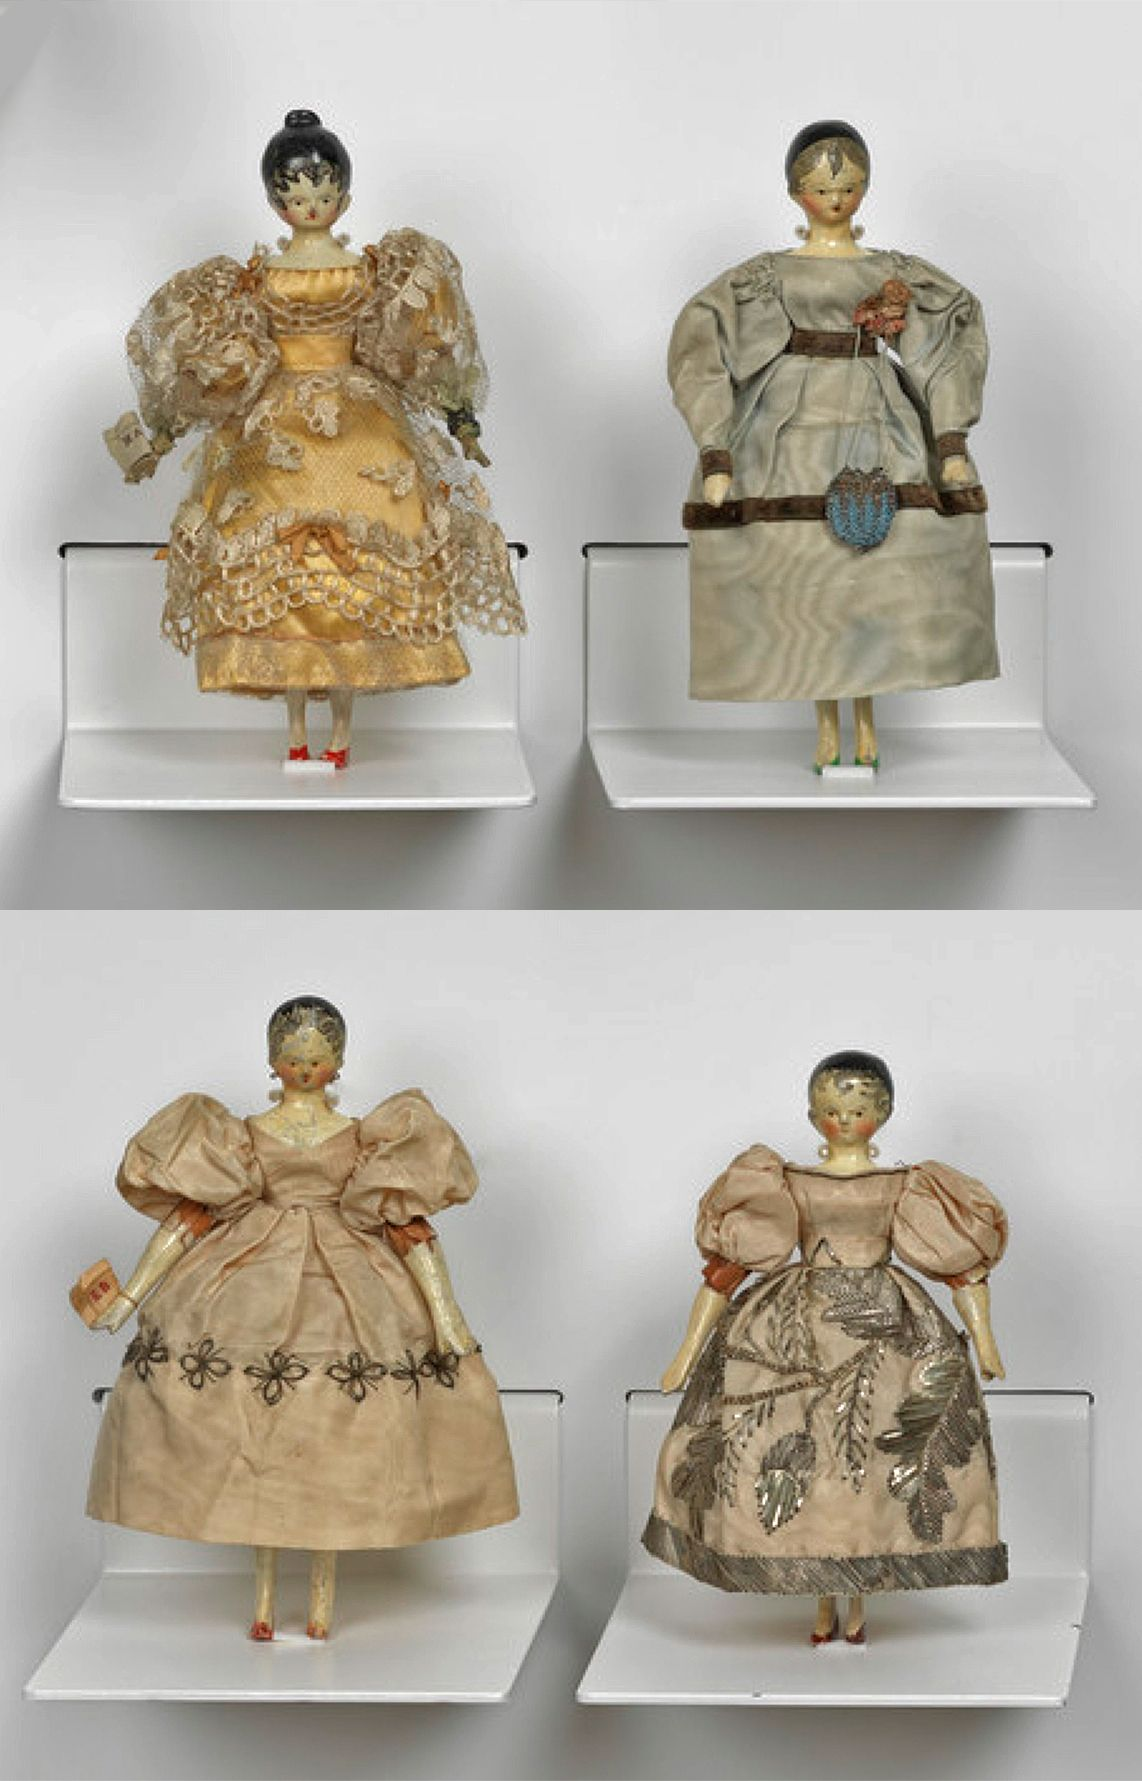 Queen victoriaus childhood dolls that she made with the help of her